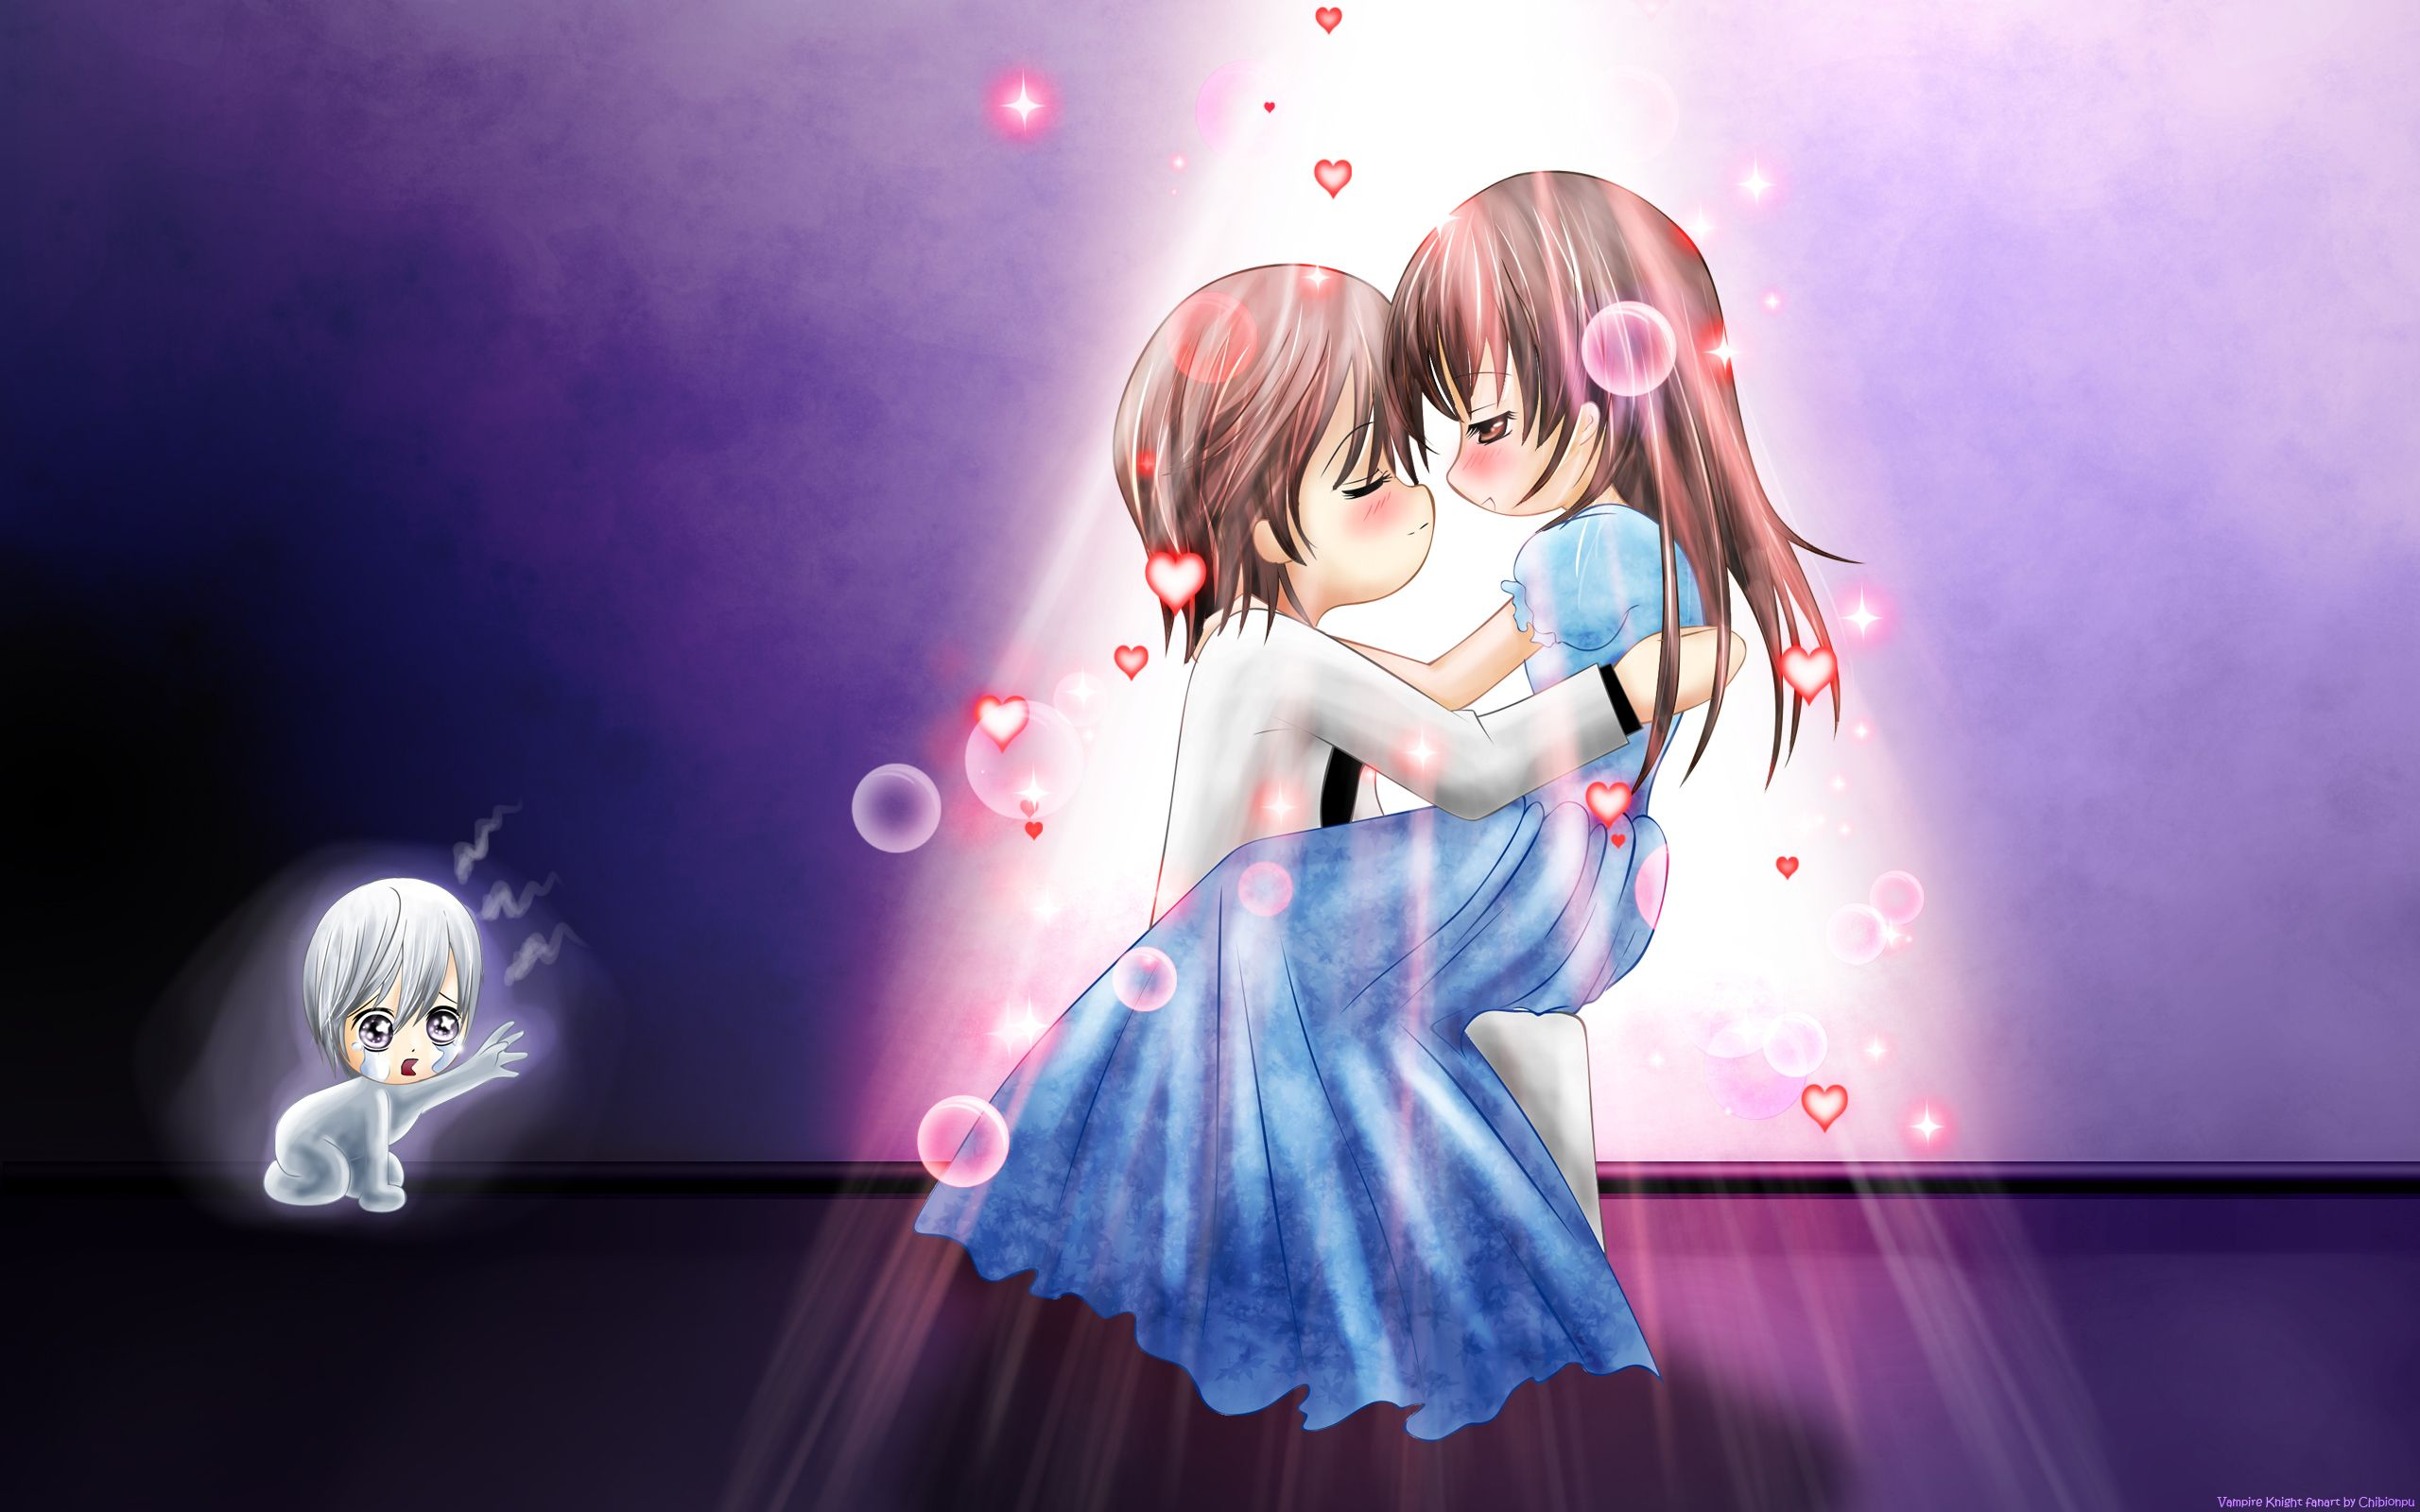 Vampire Knight Wide Live Hd Wallpapers Anime Wallpaper Vampire Knight Anime Background